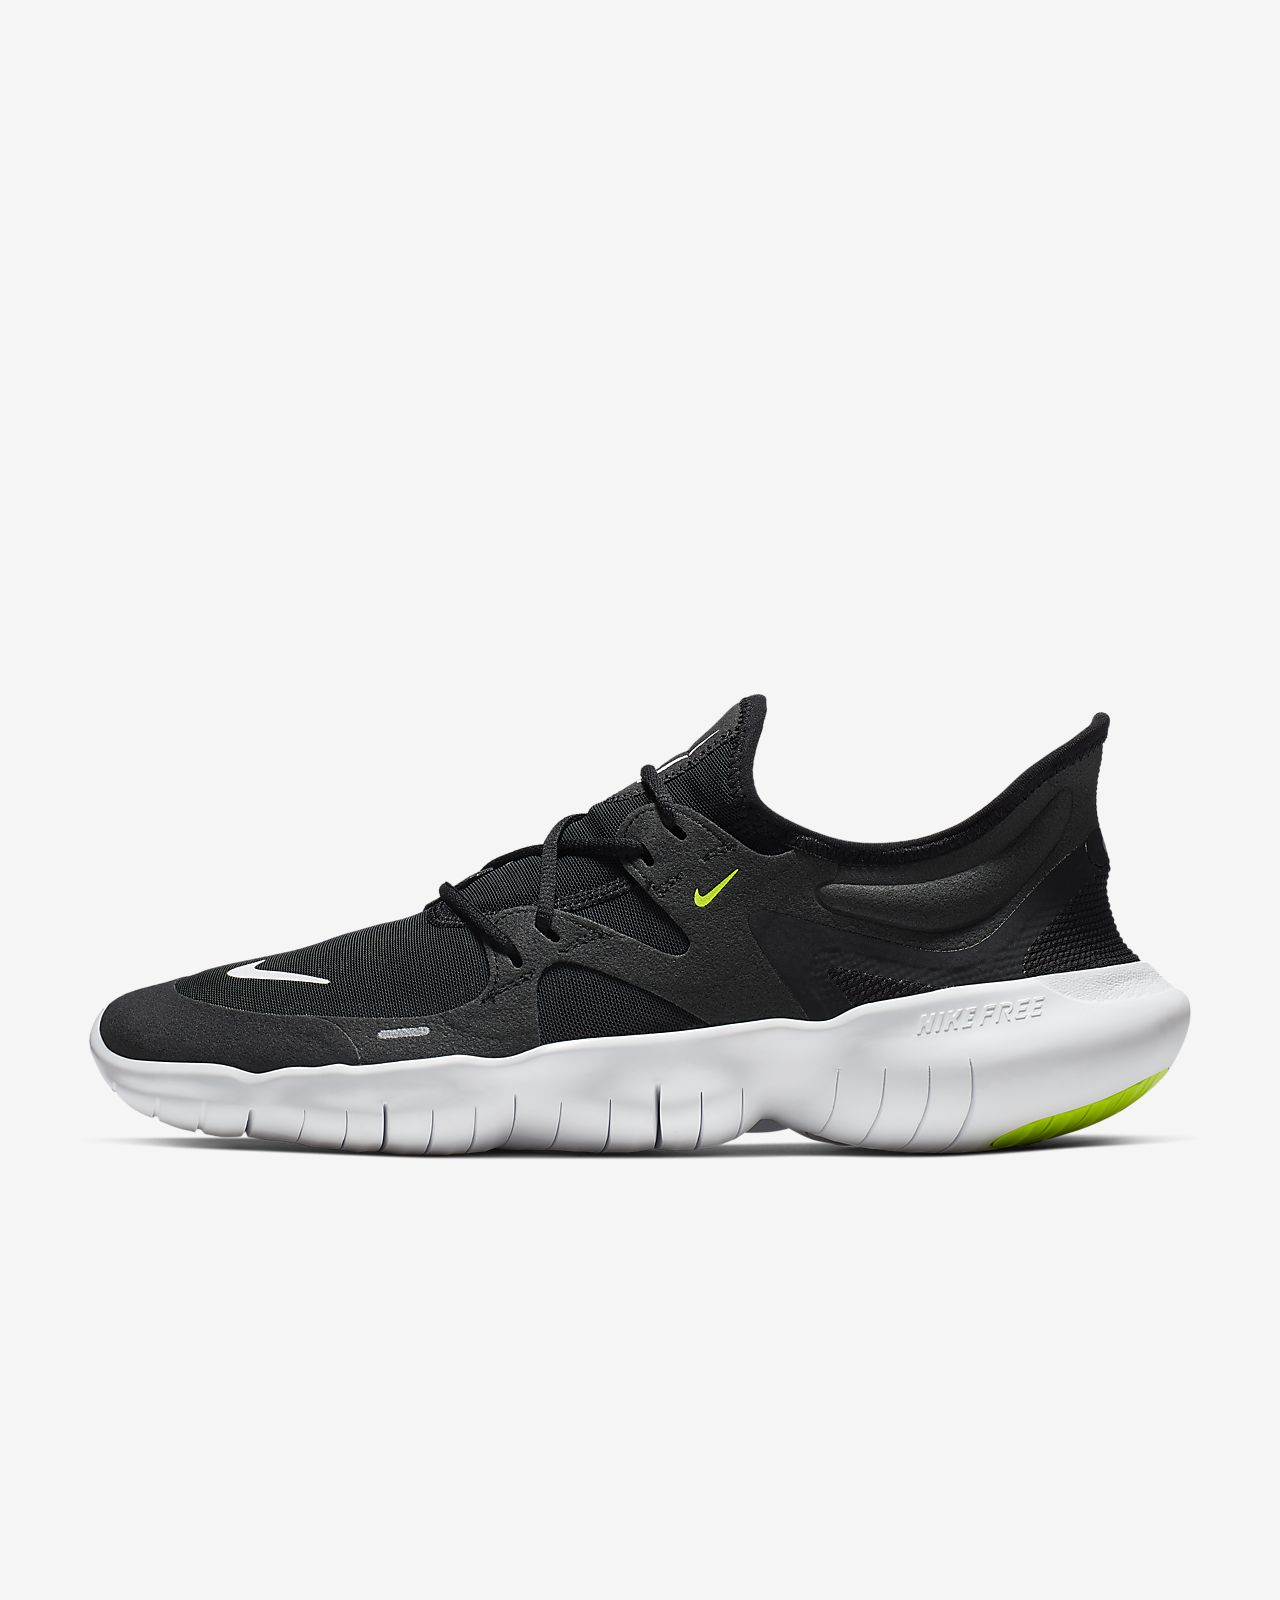 buy online d0669 1e059 Men s Running Shoe. Nike Free RN 5.0